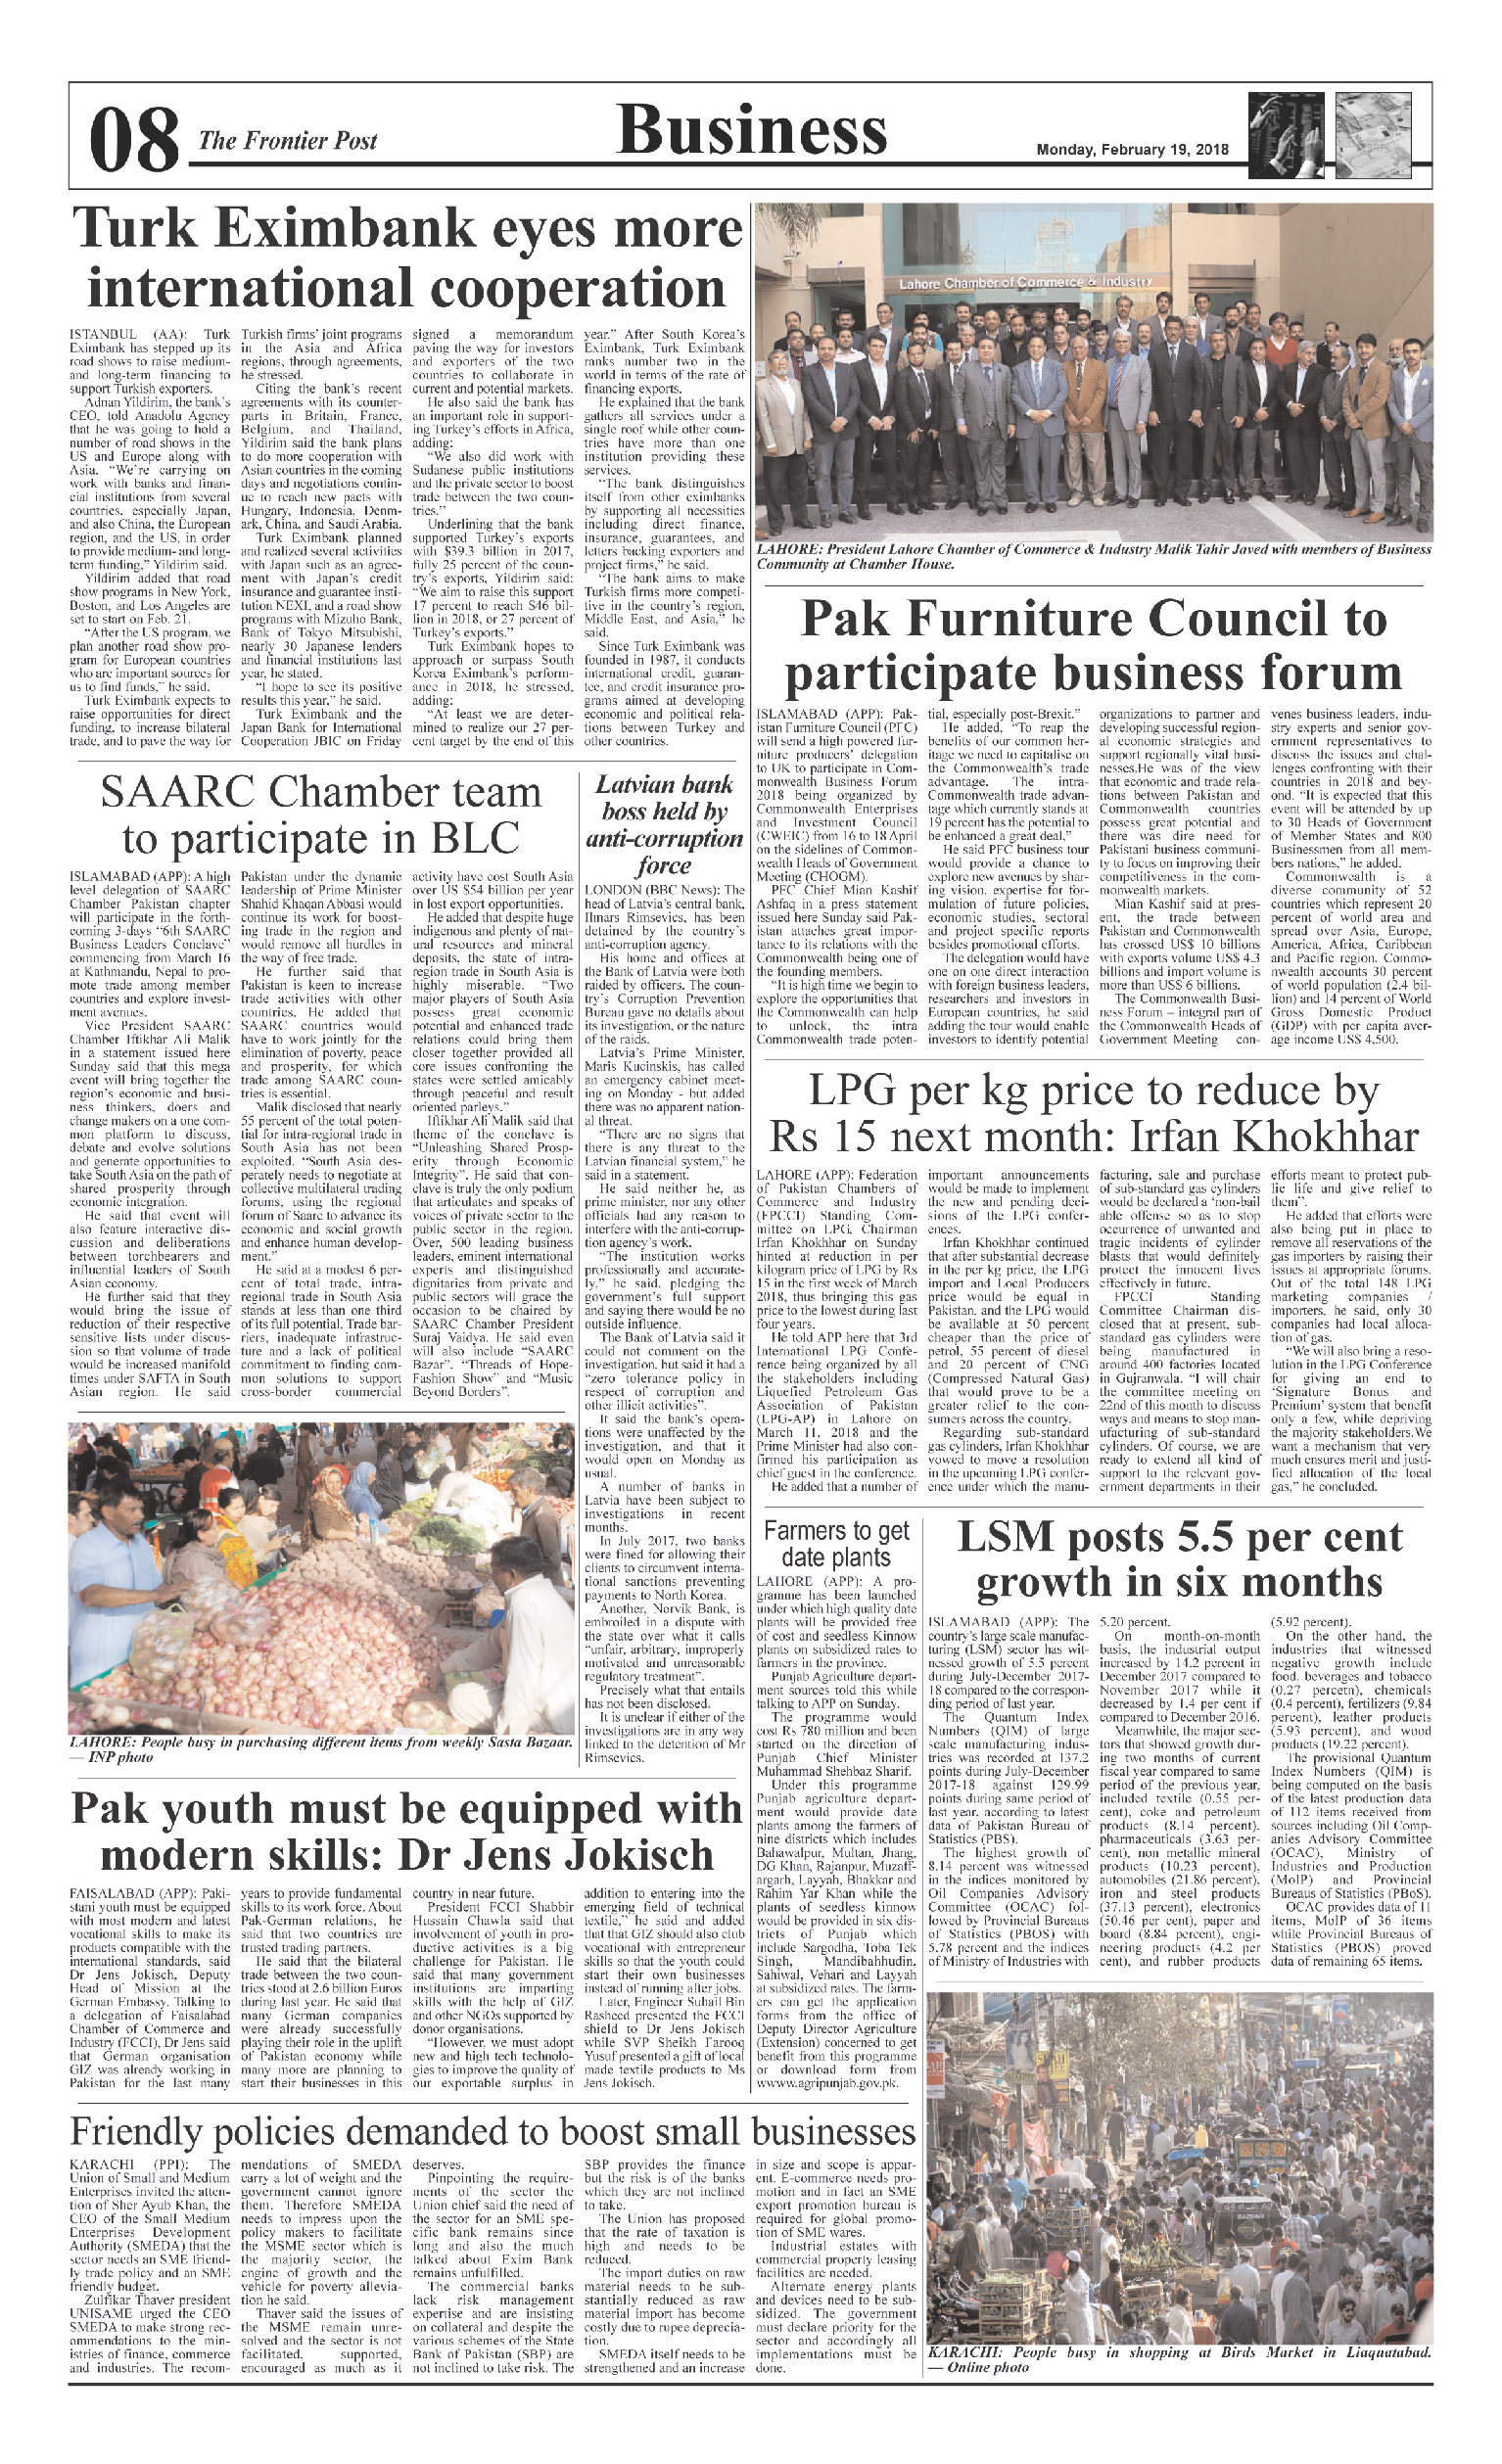 Business Page 19-02